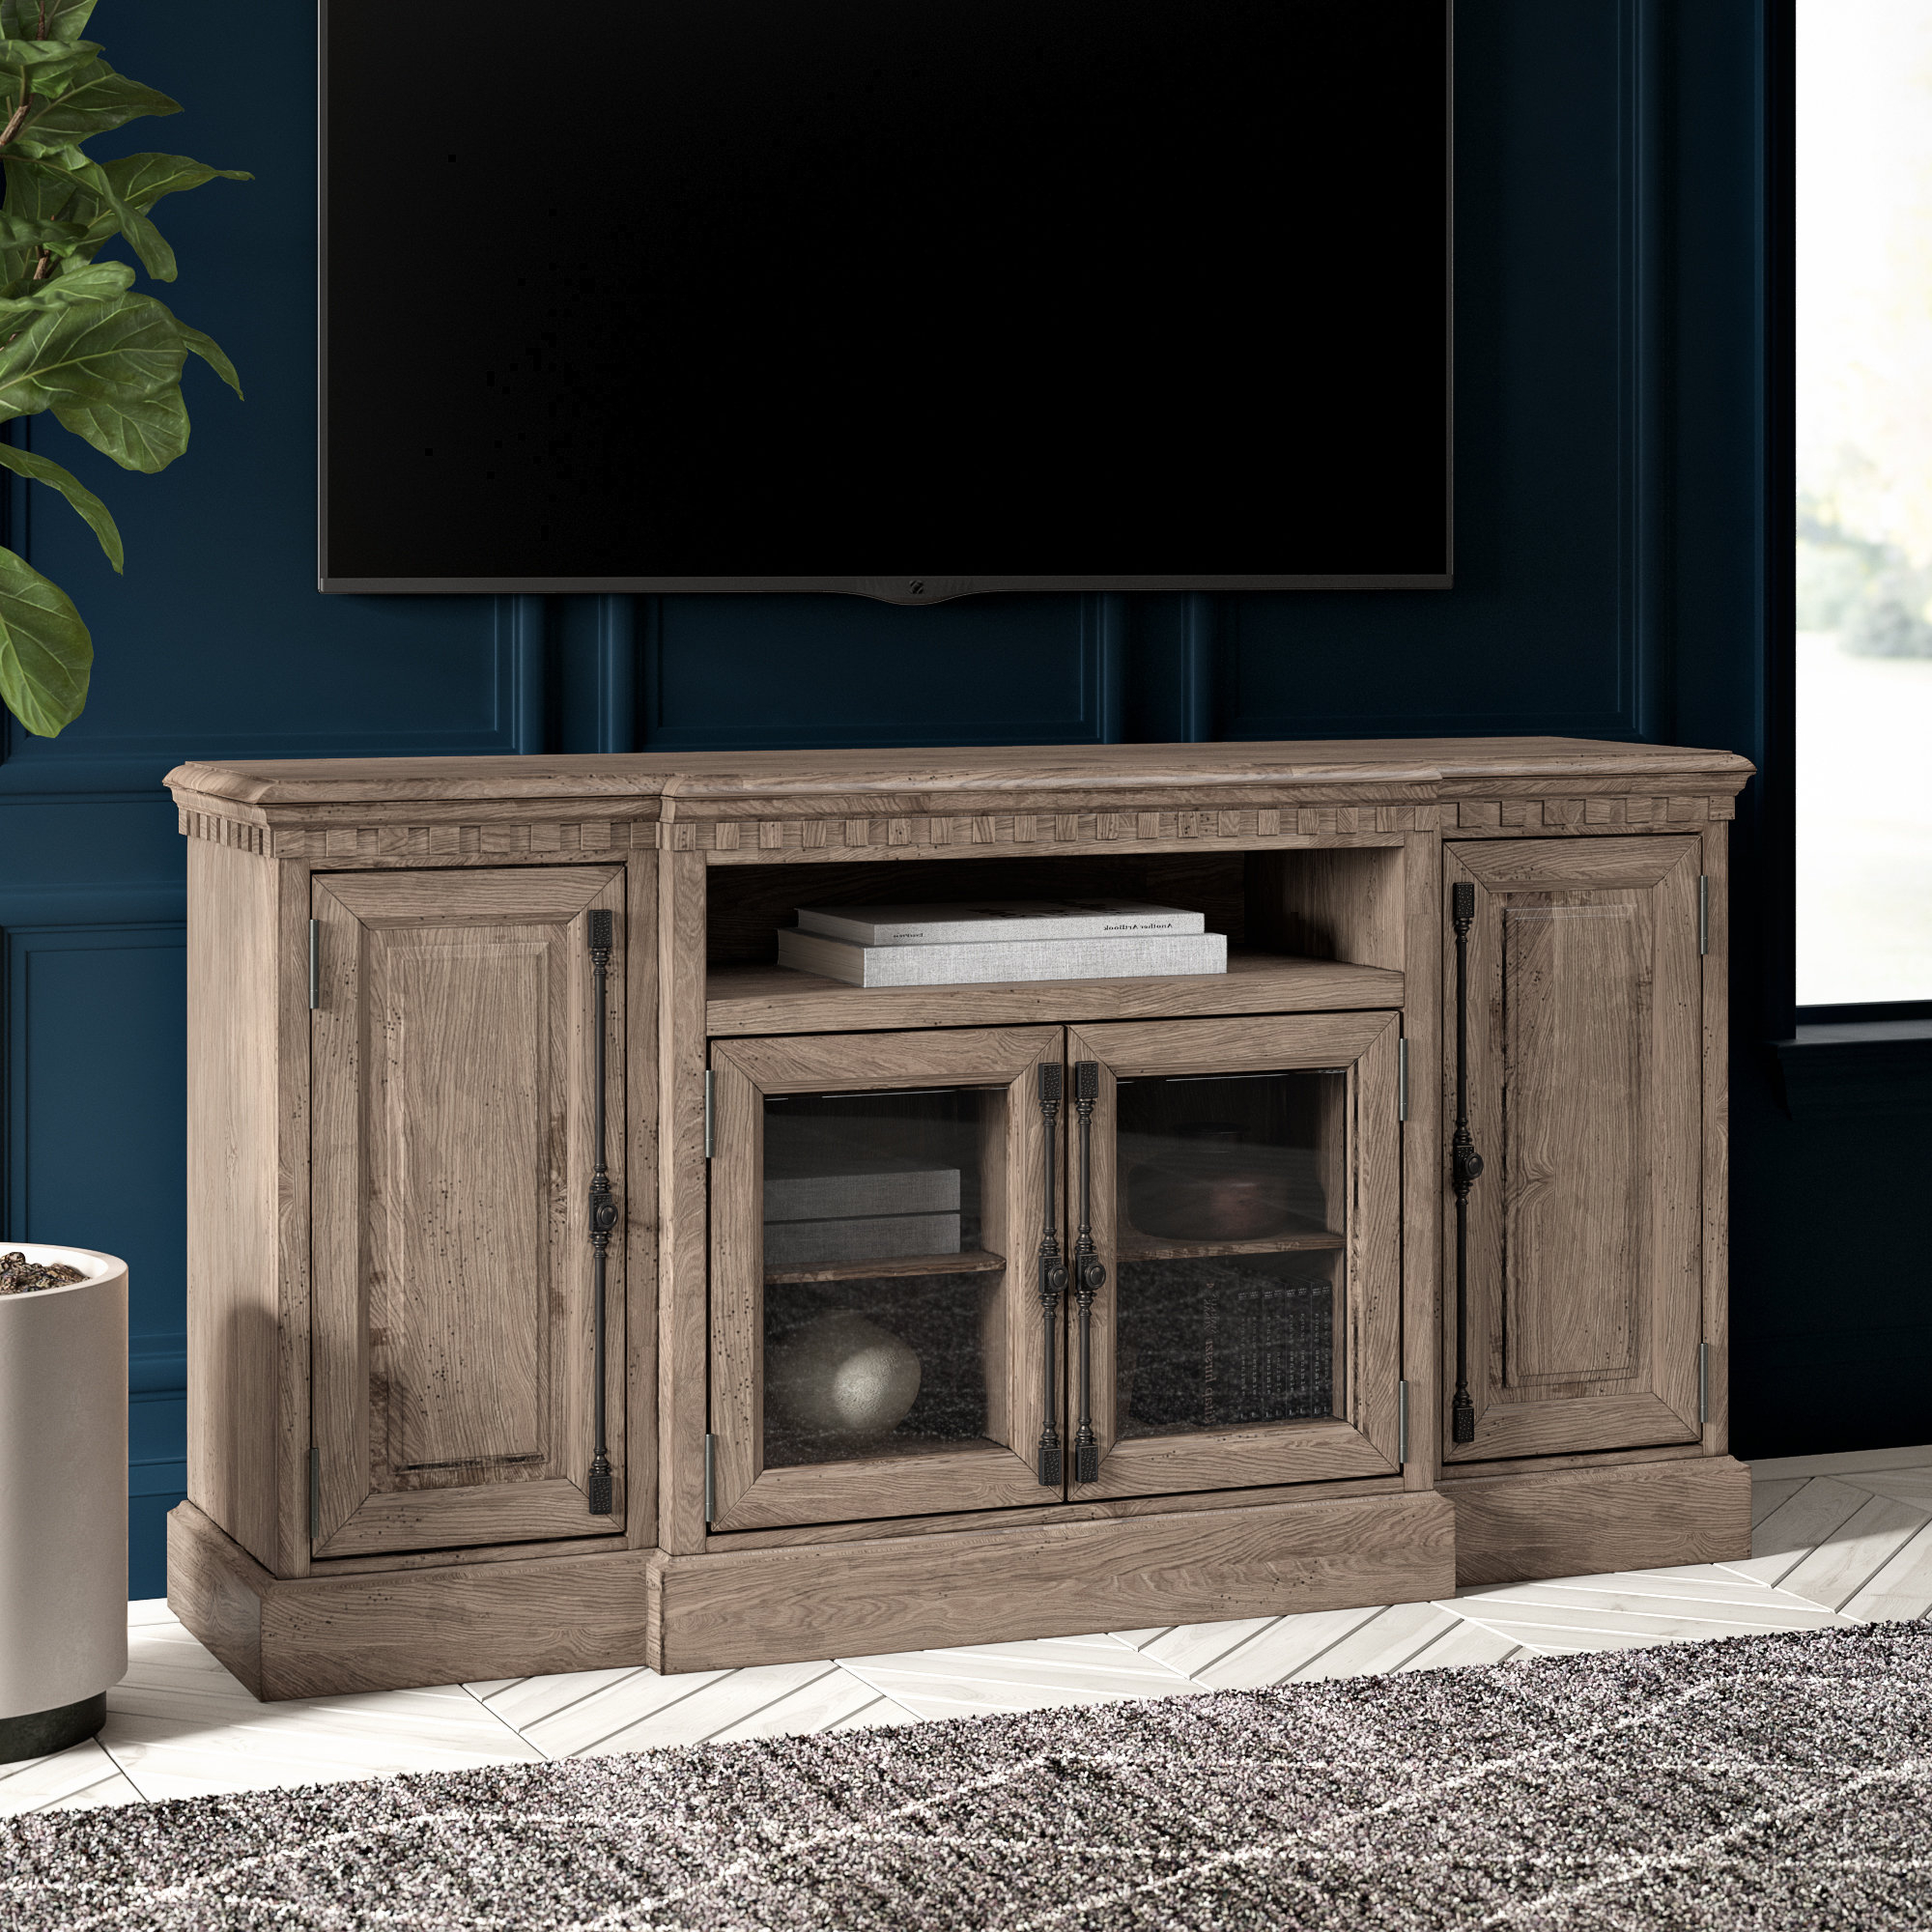 Tall Tv Stands You'll Love | Wayfair Within Wyatt 68 Inch Tv Stands (View 18 of 20)